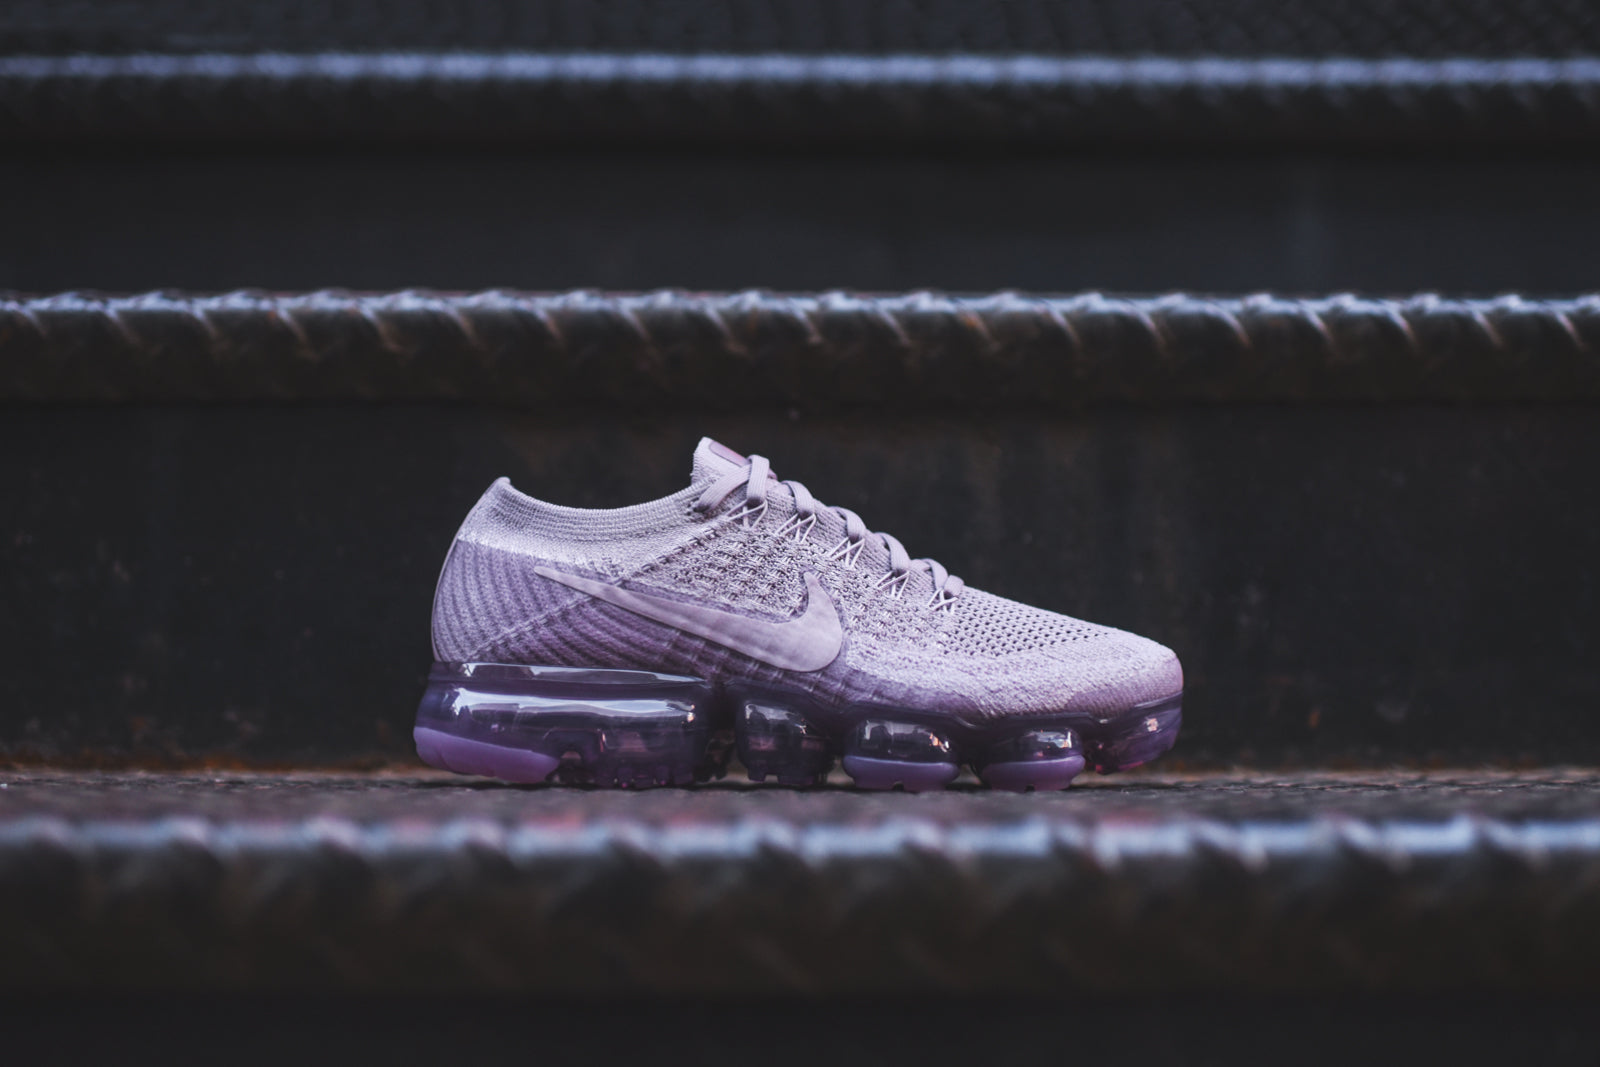 new style 39bba c2810 ... switzerland nike plum air wmns fog vapormax fk fk vapormax rose 4g4ornw  in 260daf 713cc 931cc